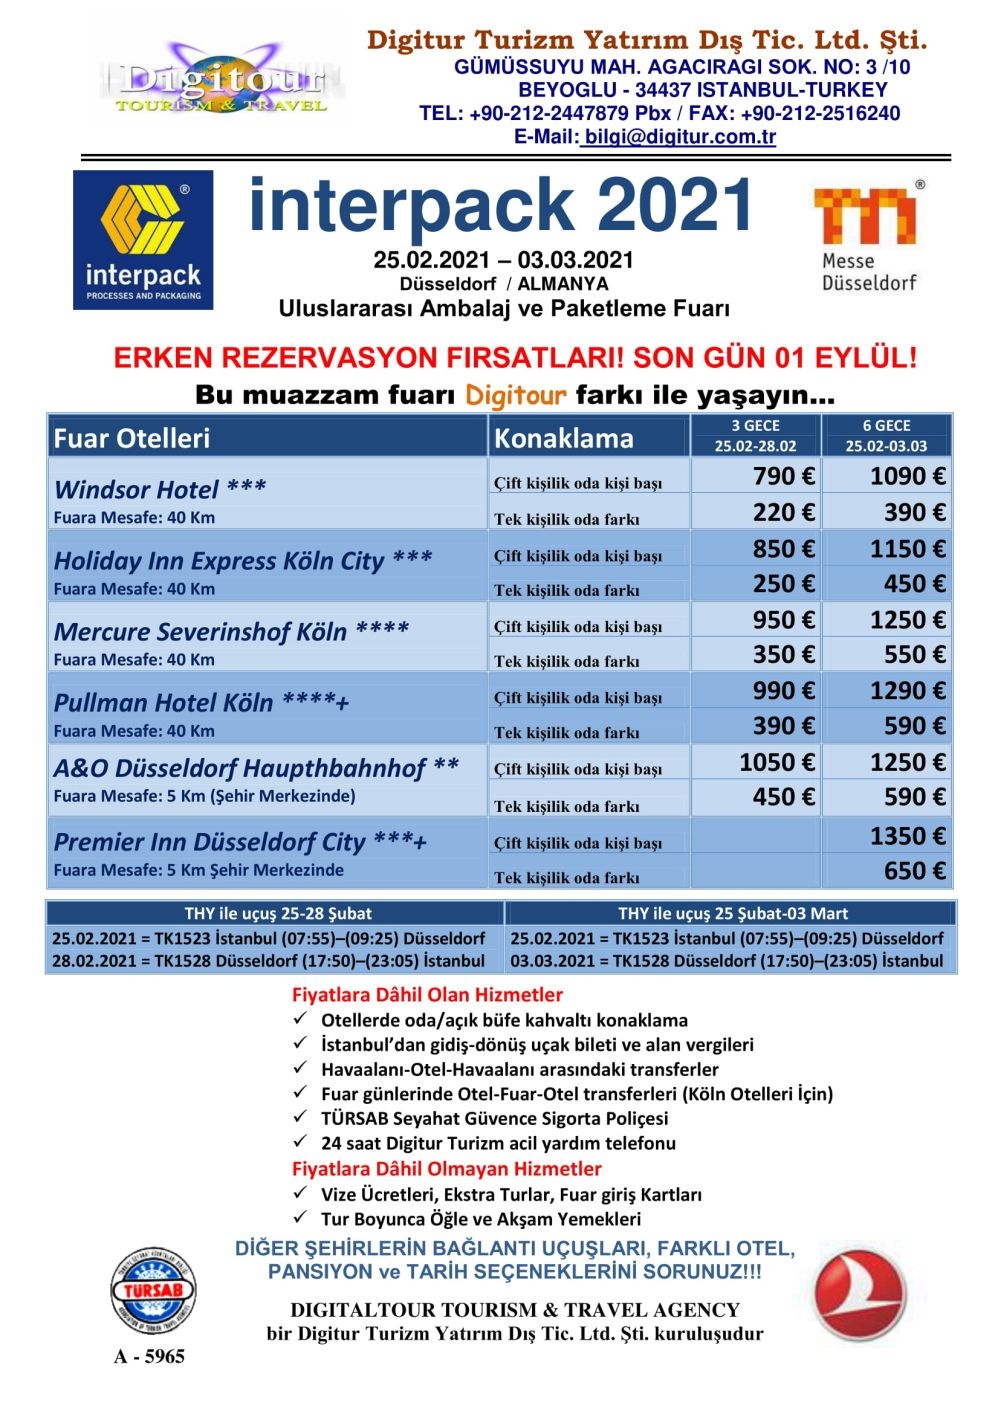 INTERPACK 2021 1